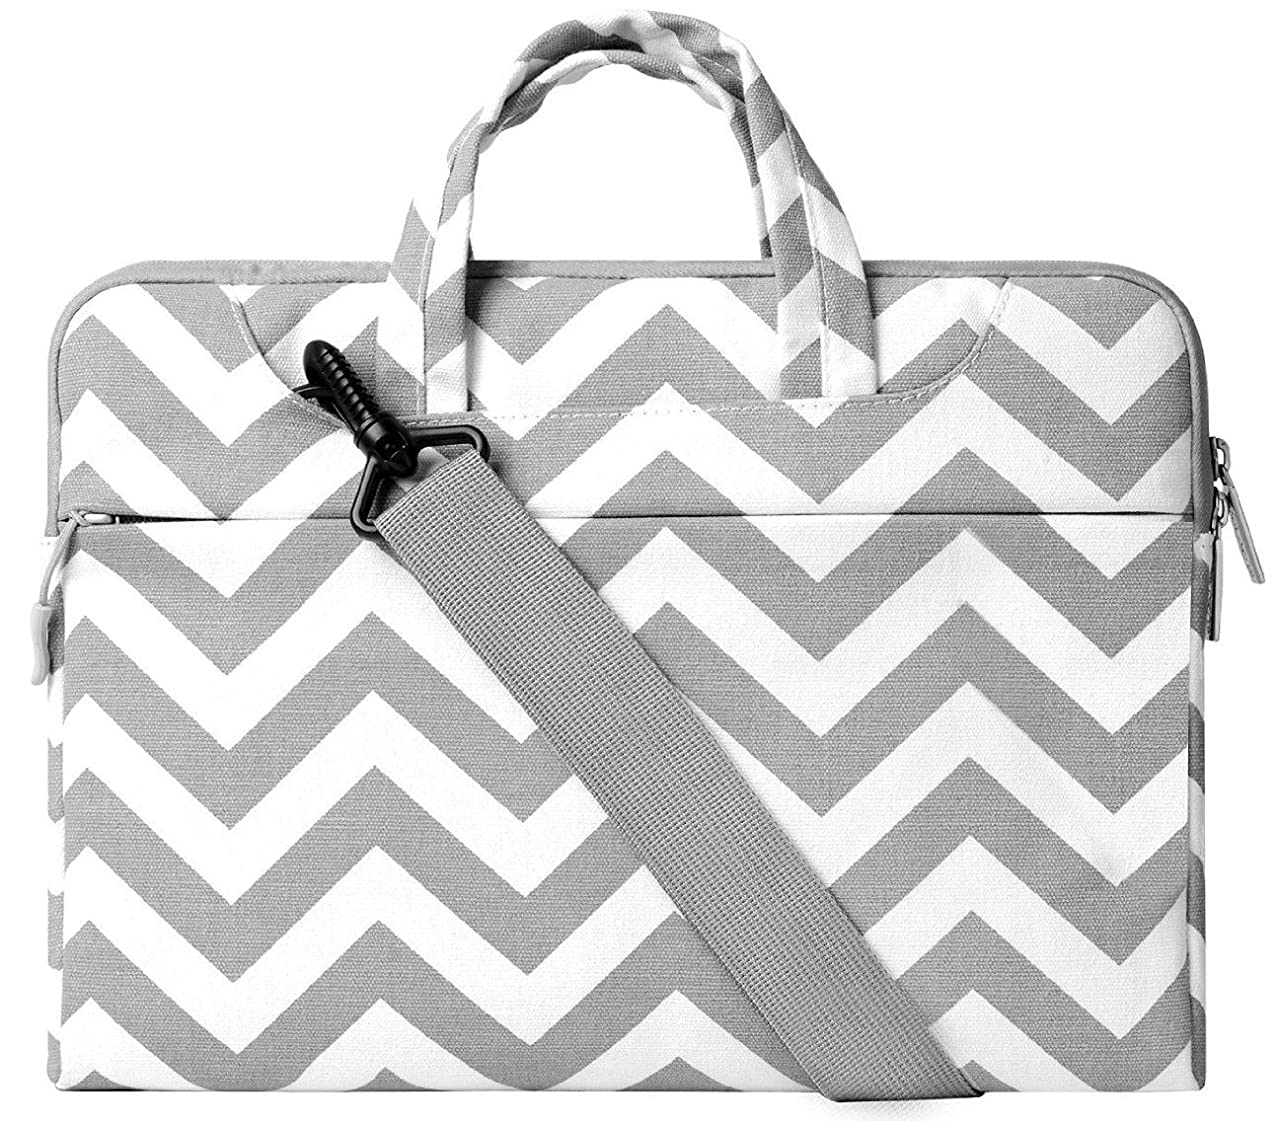 MOSISO Laptop Shoulder Bag Compatible 13-13.3 Inch MacBook Pro, MacBook Air, Notebook Computer, Chevron Style Protective Polyester Carrying Handbag Briefcase Sleeve Case Cover, Gray